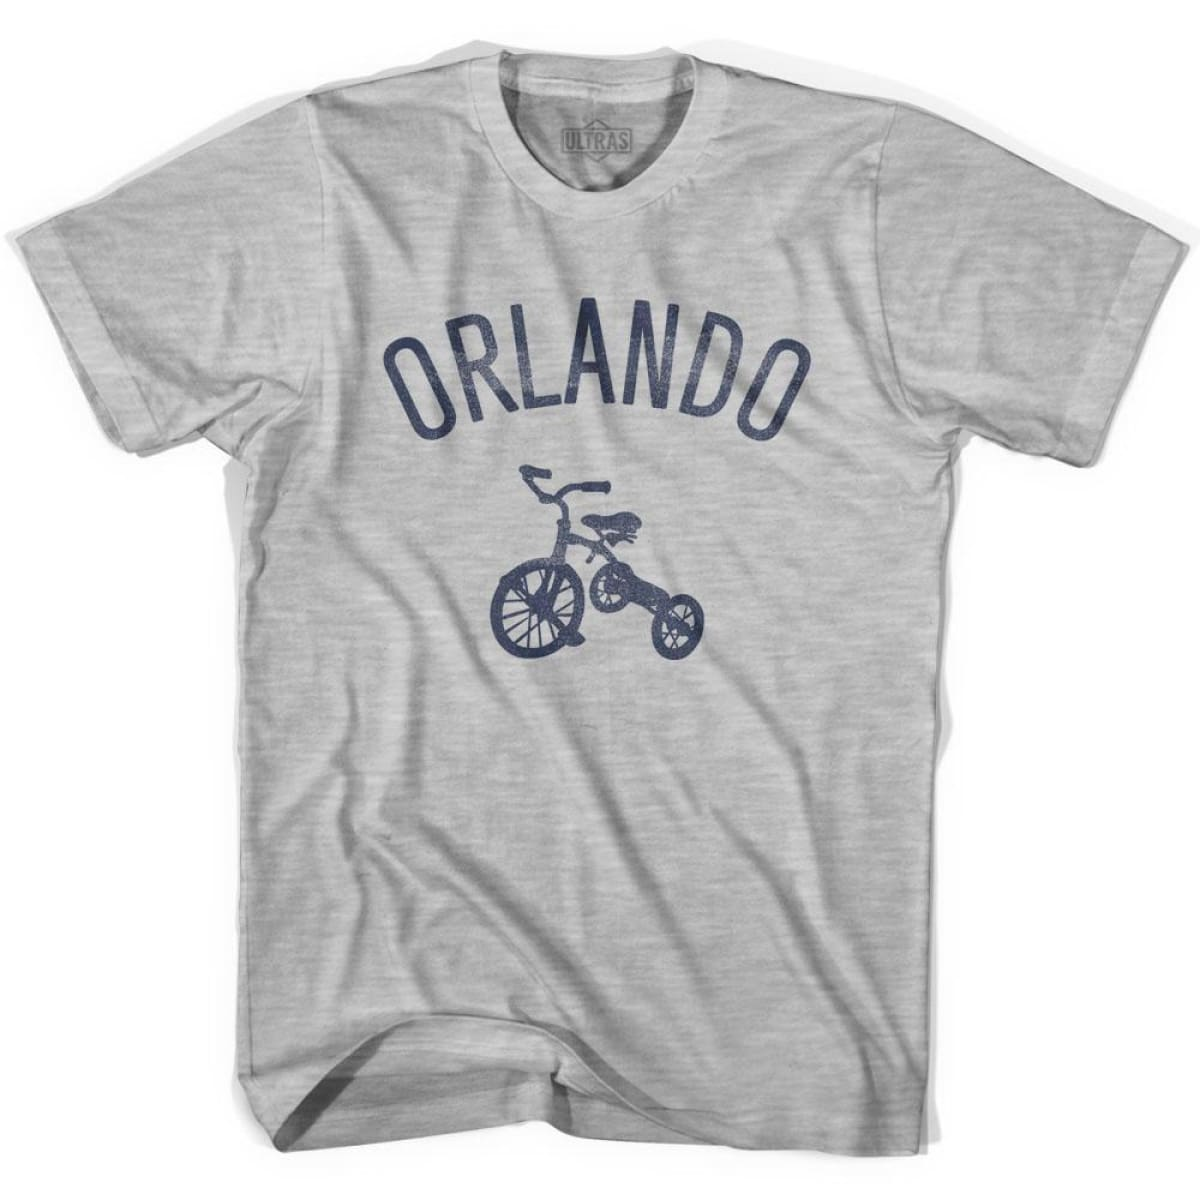 Orlando City Tricycle Youth Cotton T-shirt - Tricycle City